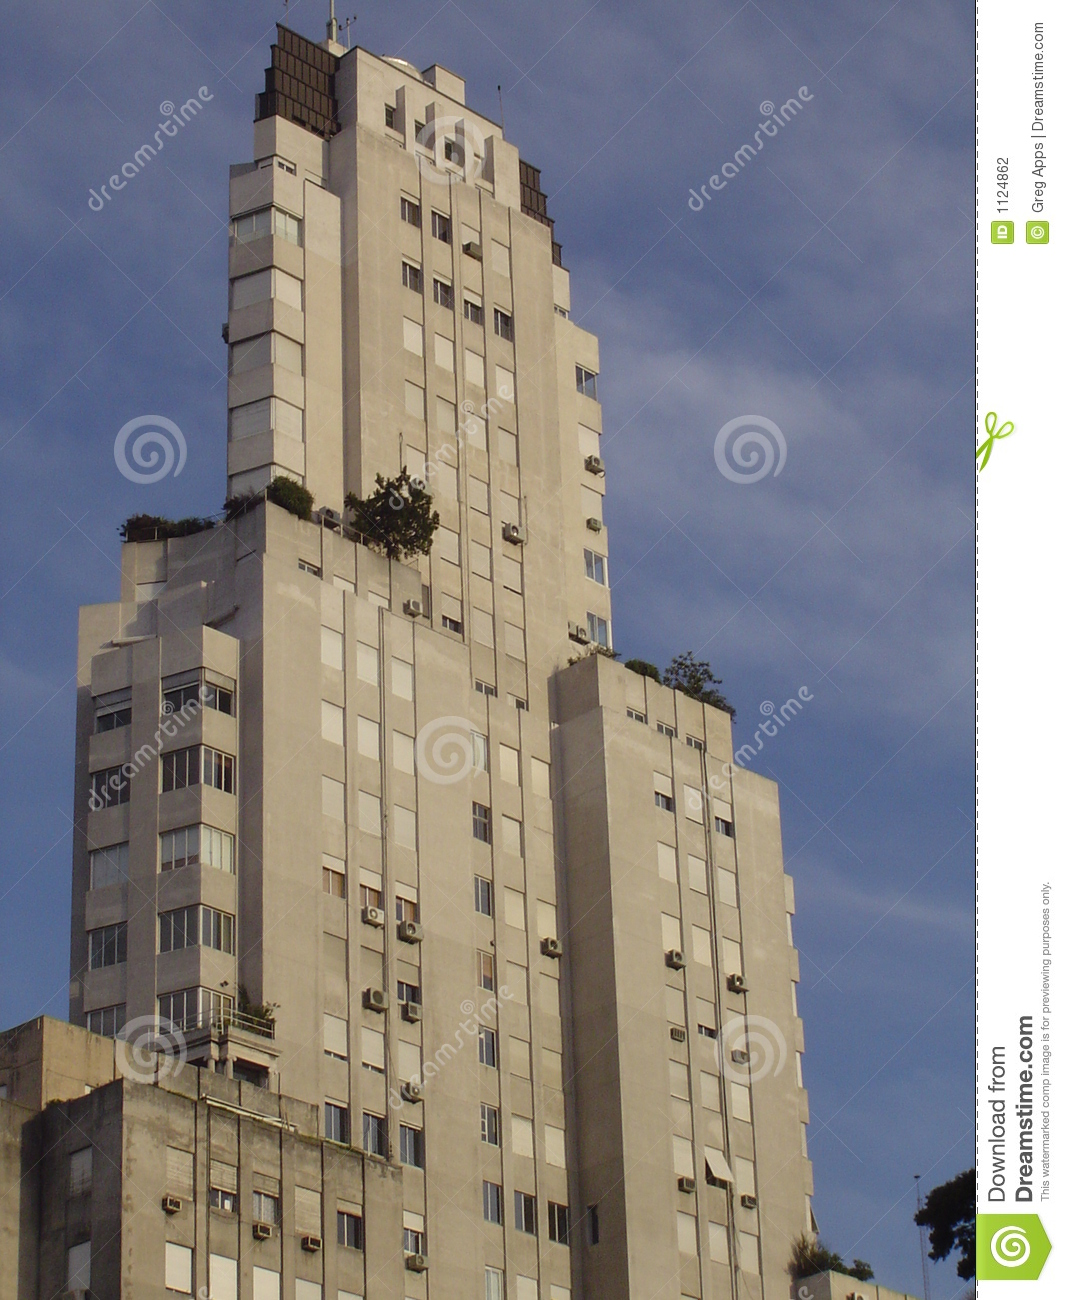 Deco monolith stock photography image 1124862 for Art deco hotel buenos aires